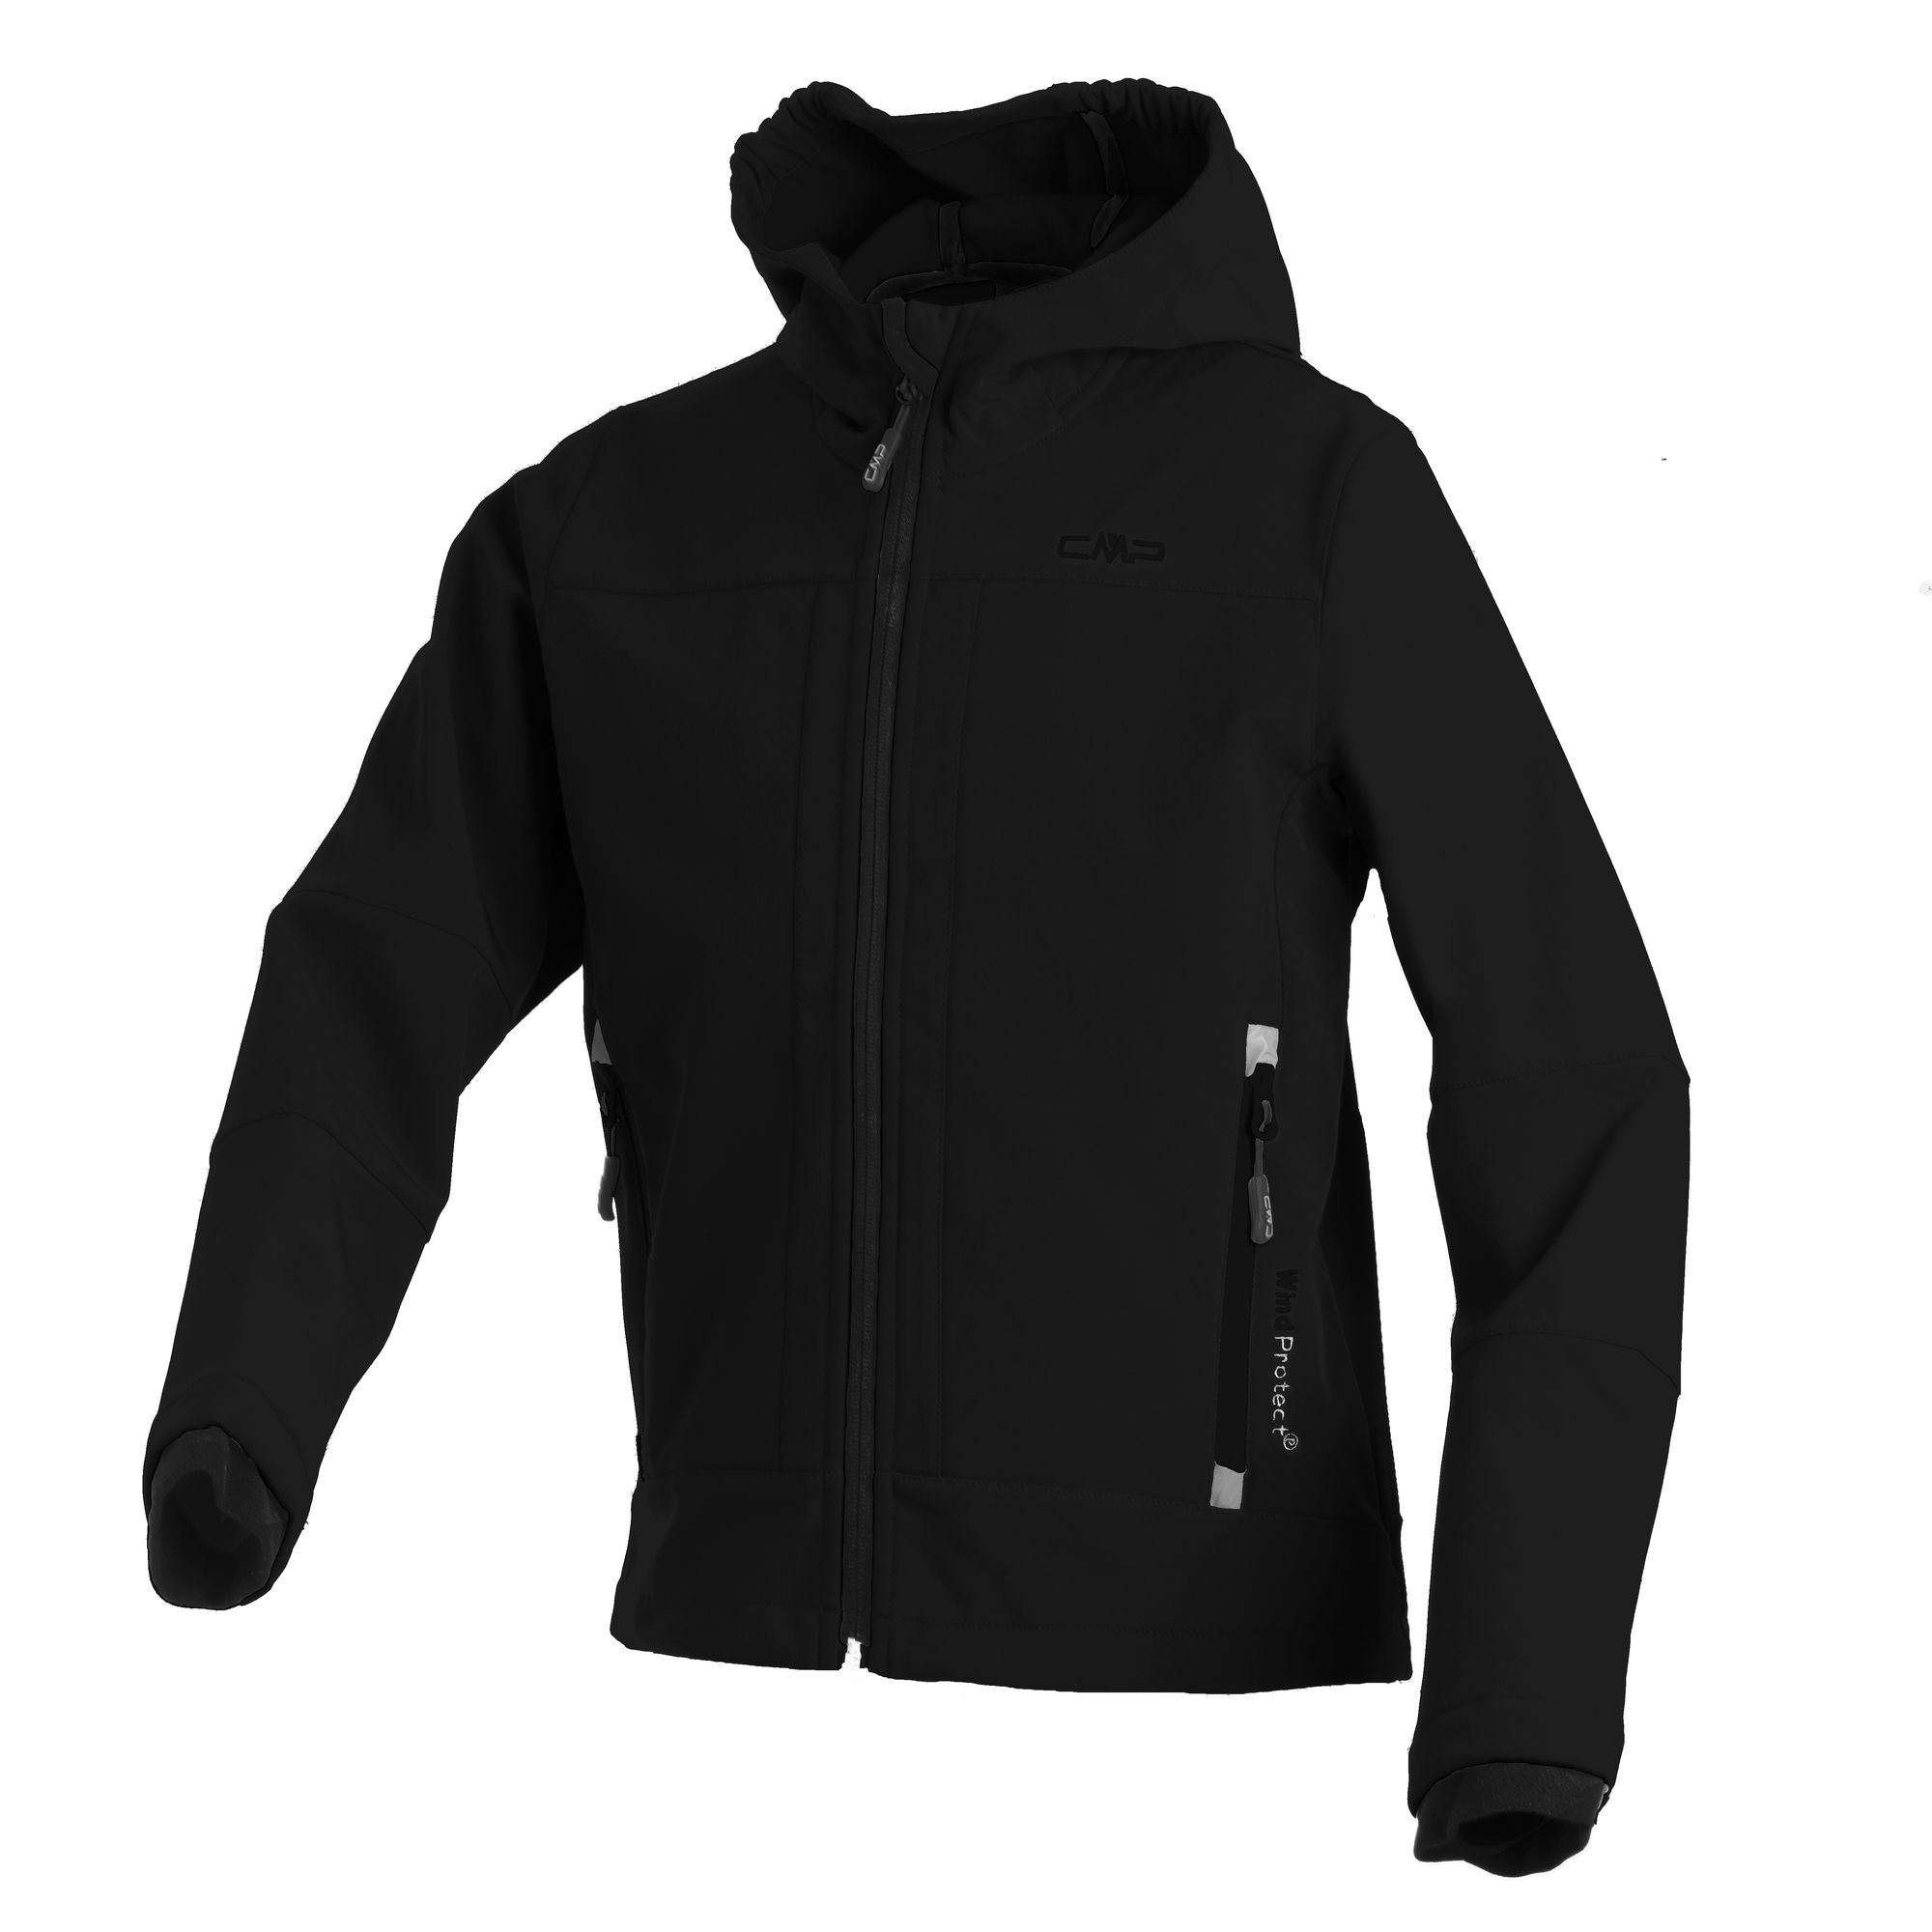 Kinder Softshell-Jacke BOY SOFTSHELL JACKET FIX HOOD